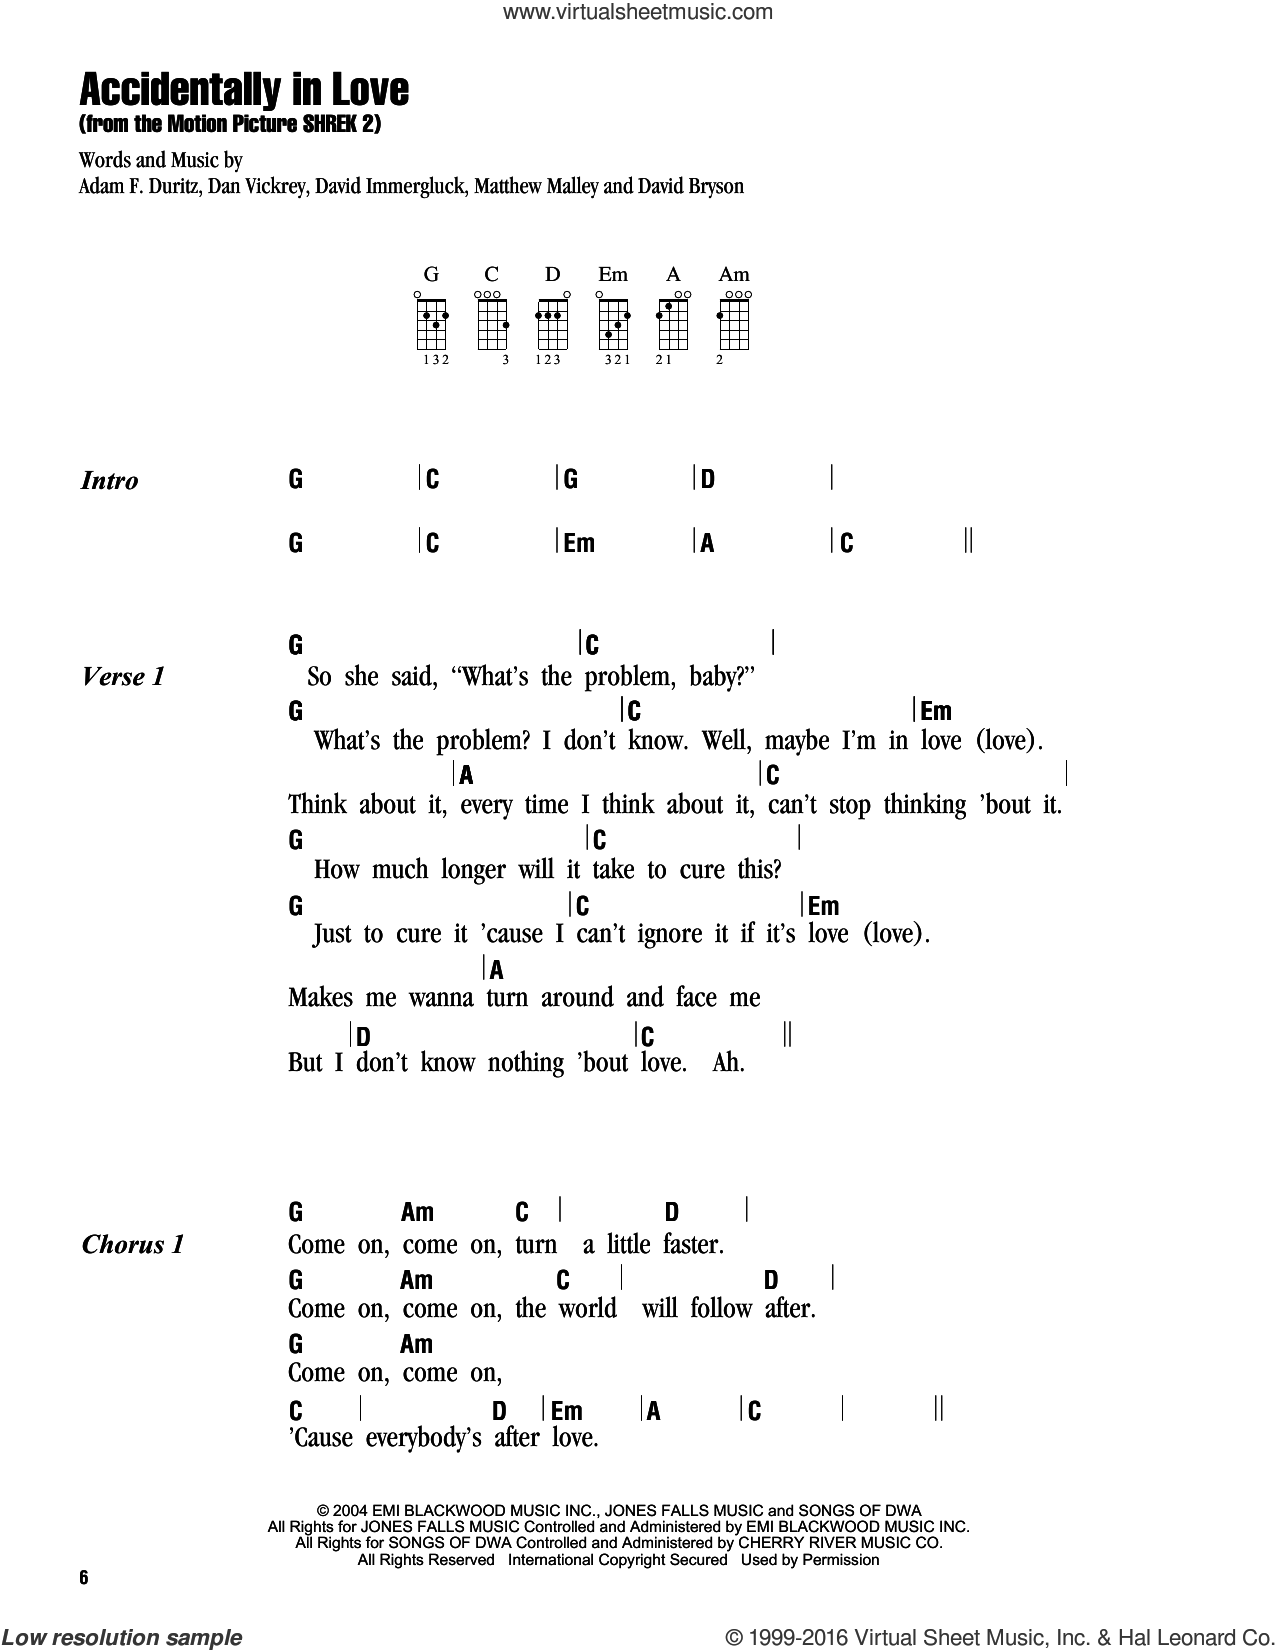 Accidentally In Love sheet music for ukulele (chords) by Counting Crows, Adam Duritz, Dan Vickrey, David Bryson, David Immergluck and Matthew Malley, intermediate skill level